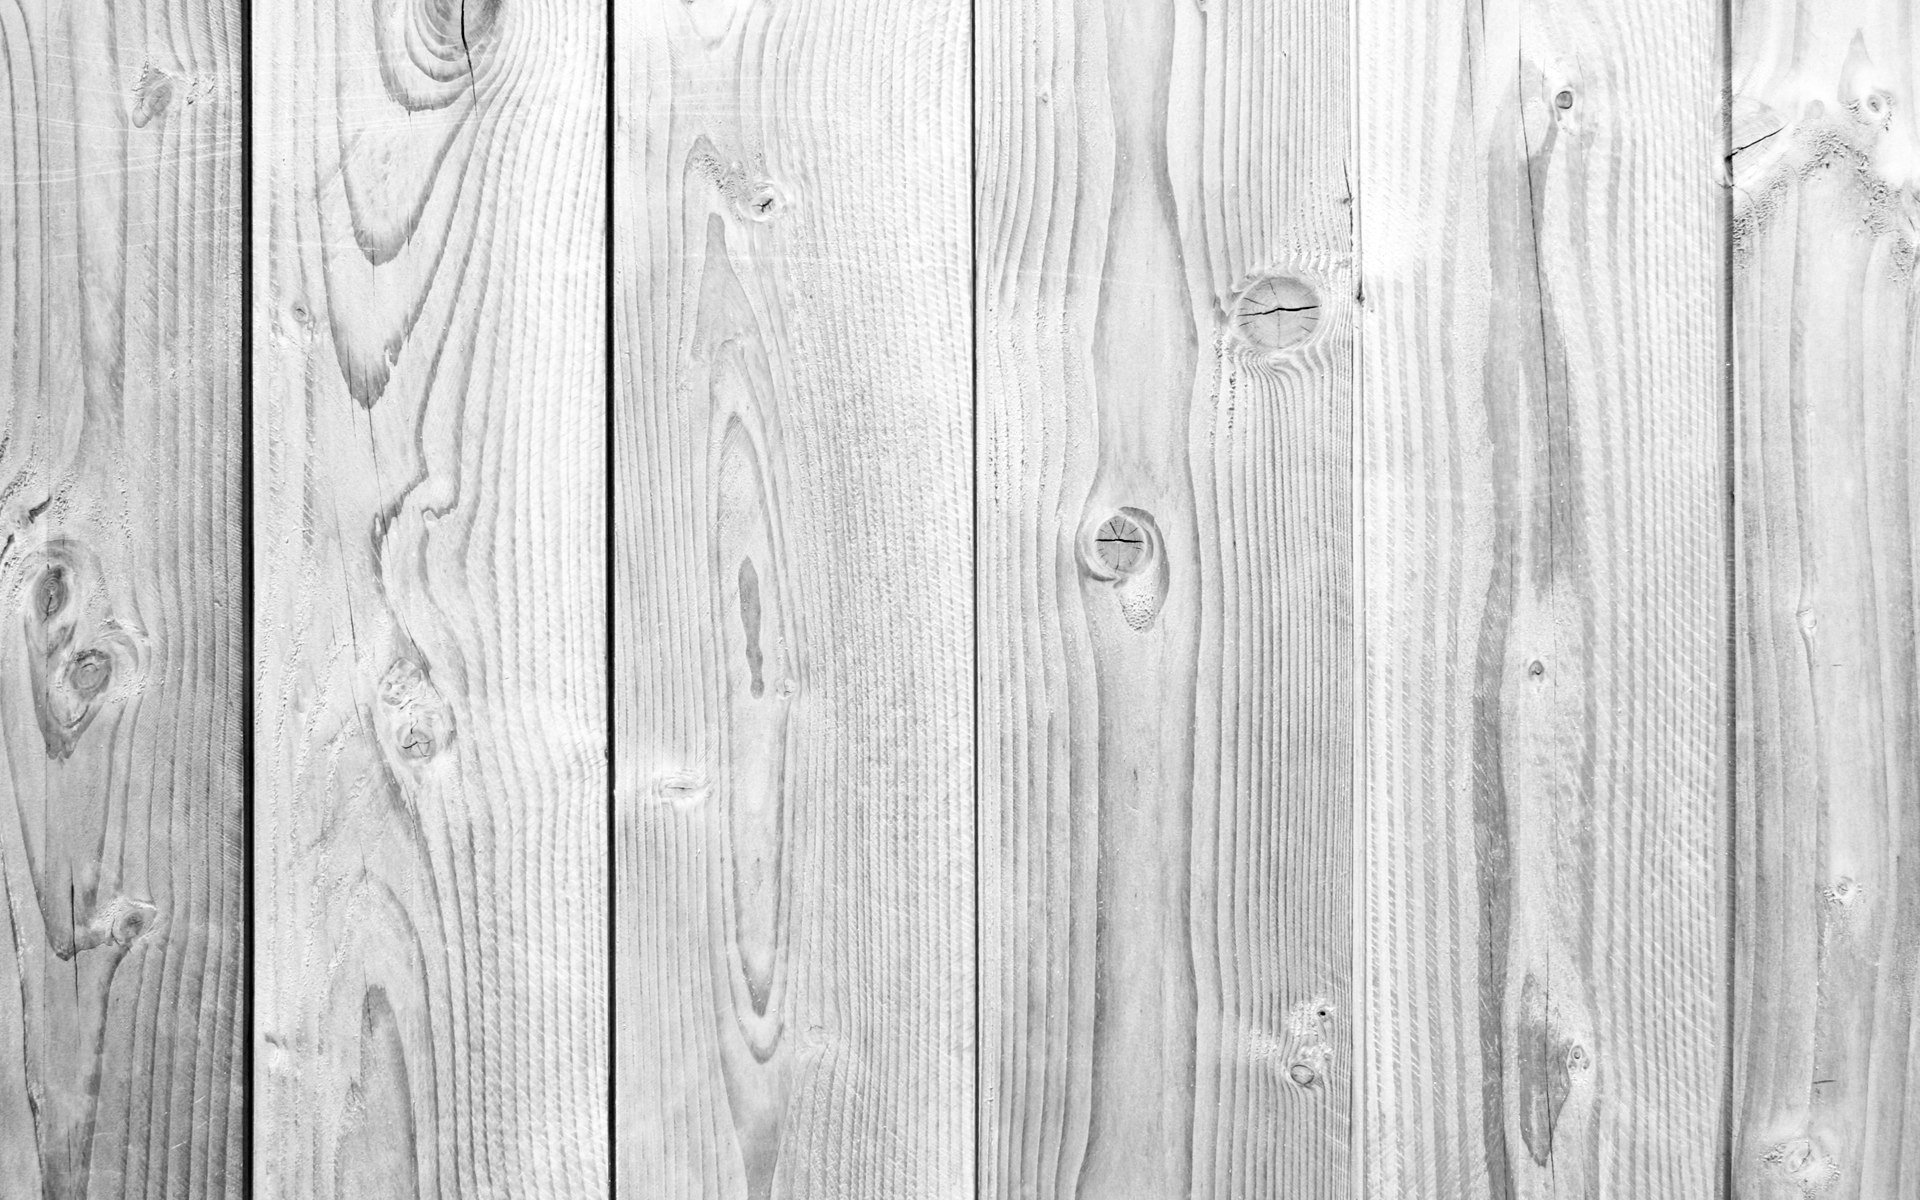 Wood slats cliparts svg black and white stock White Wood Wall Texture Wallpaper | Free Images at Clker.com ... svg black and white stock